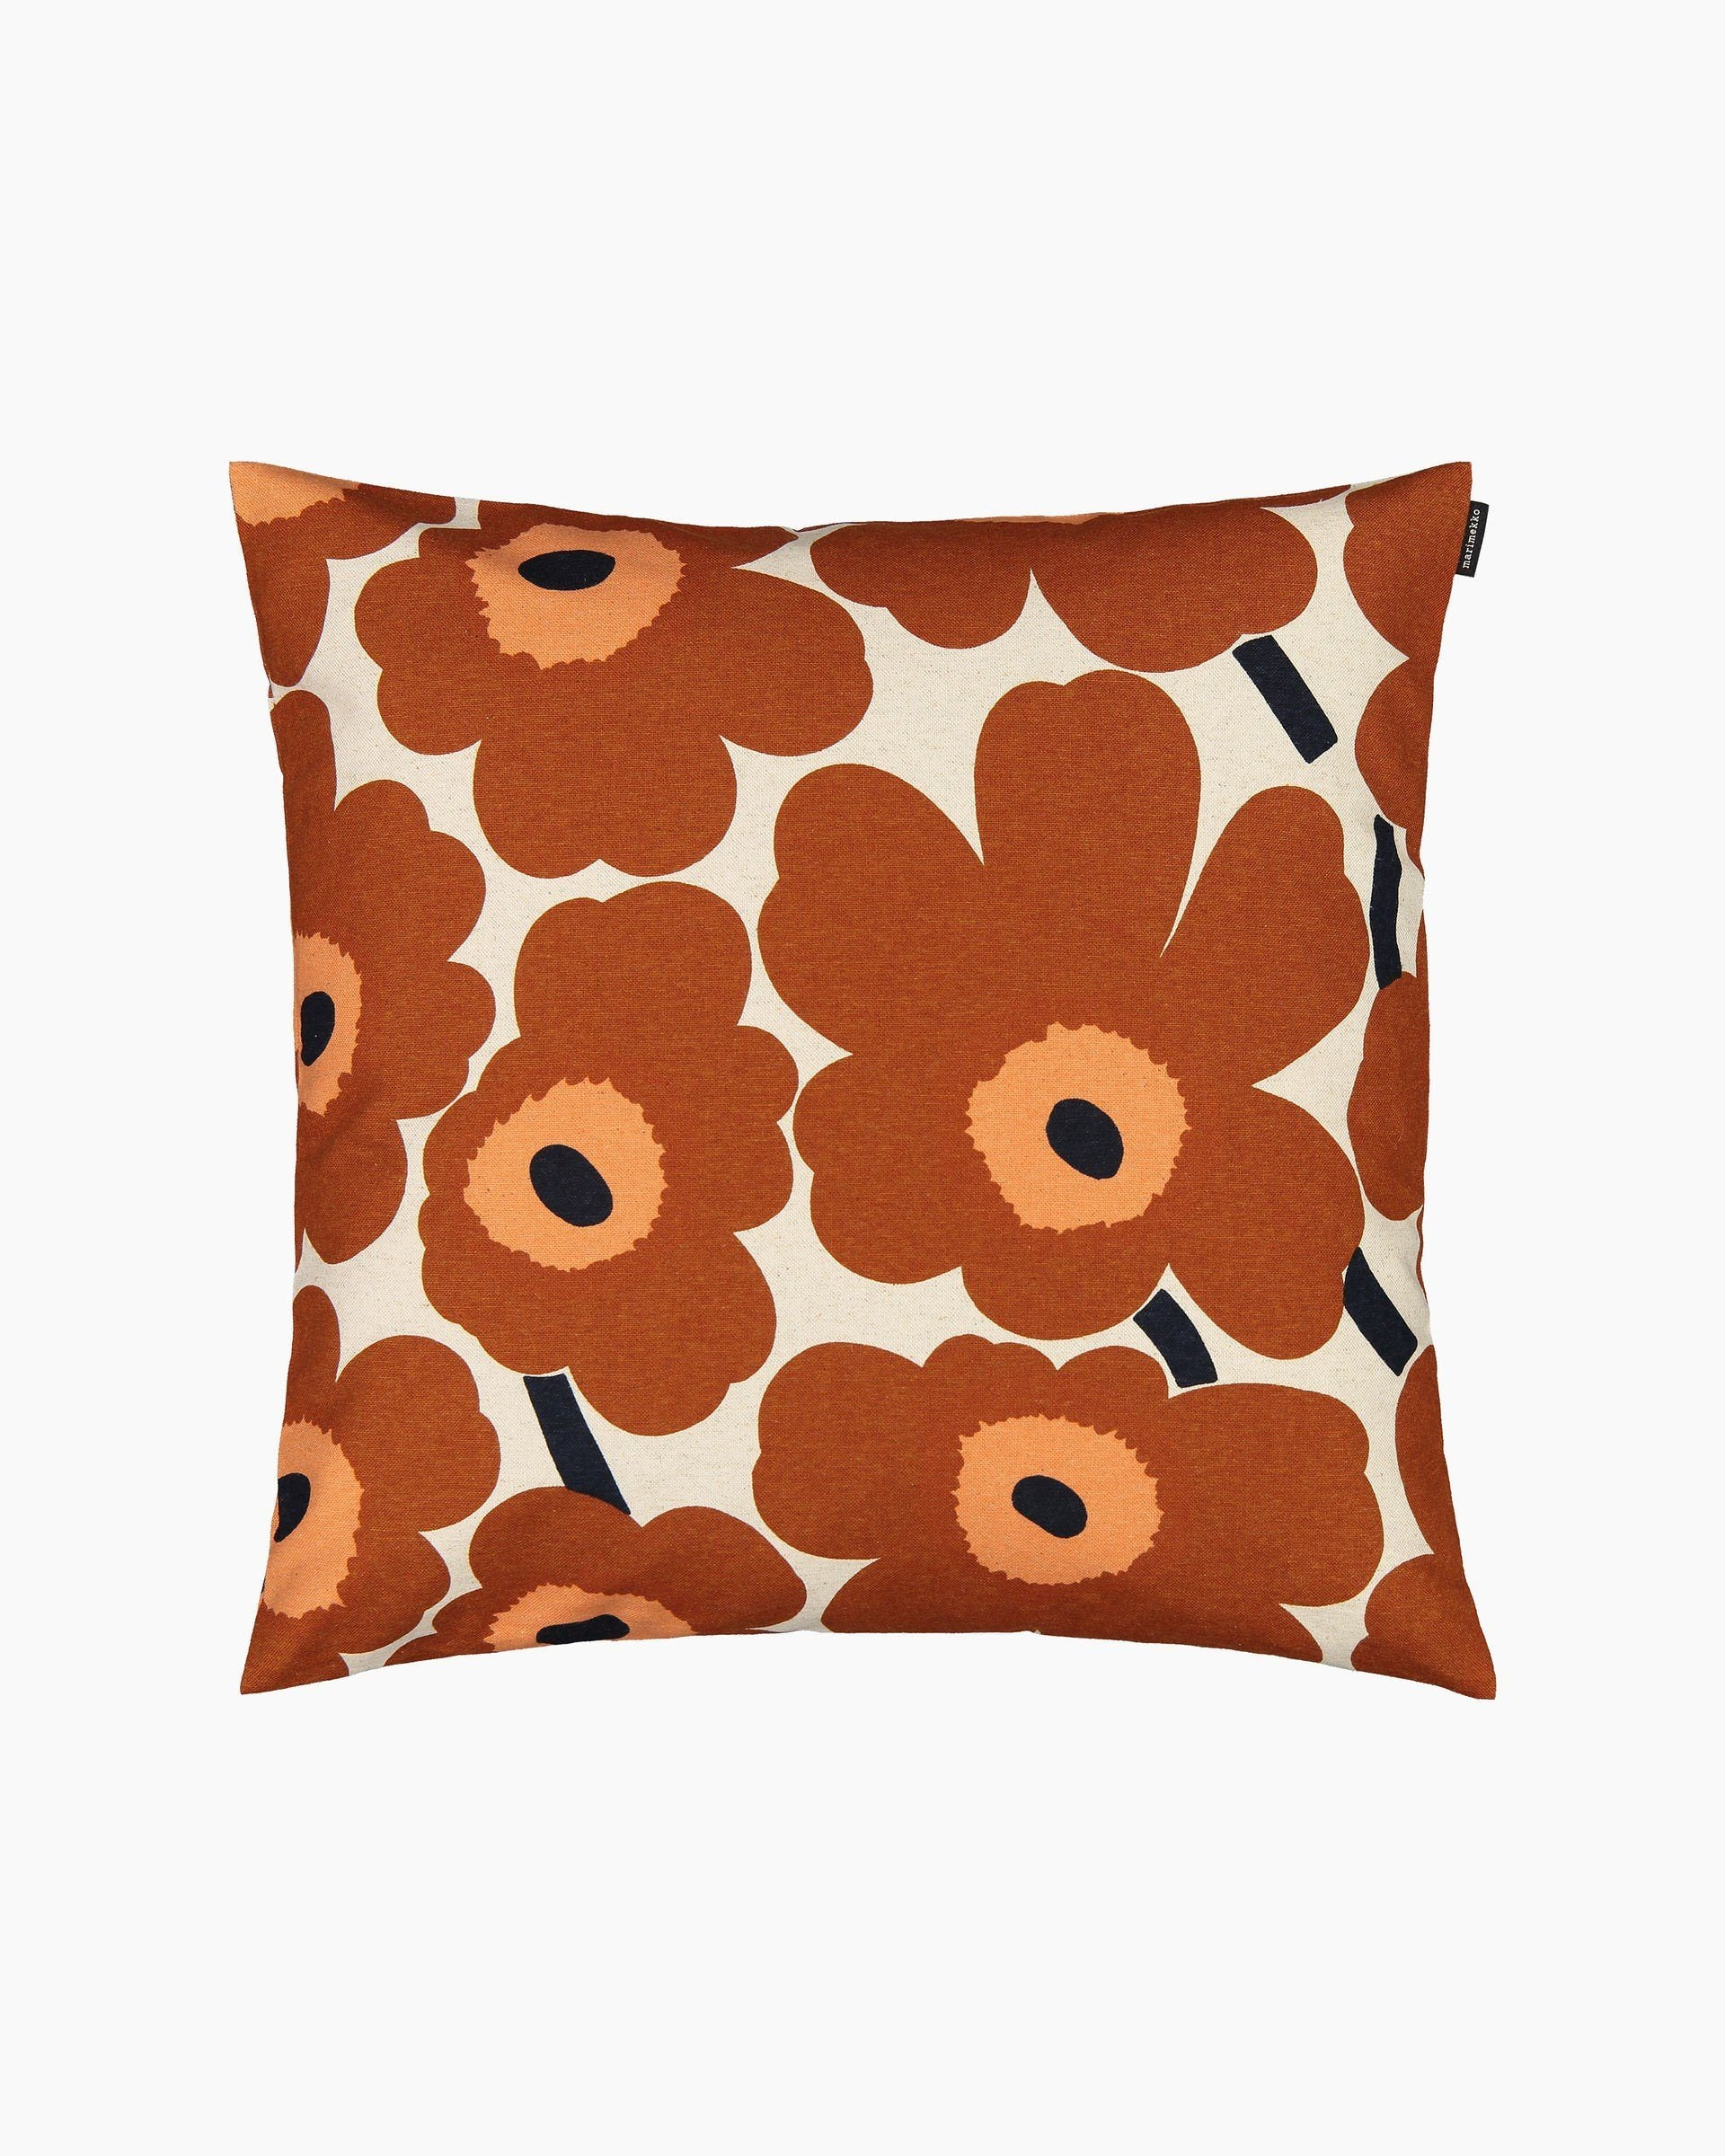 Marimekko, Pieni Unikko Cushion Cover, Cotton/ Chestnut / One size- Placewares